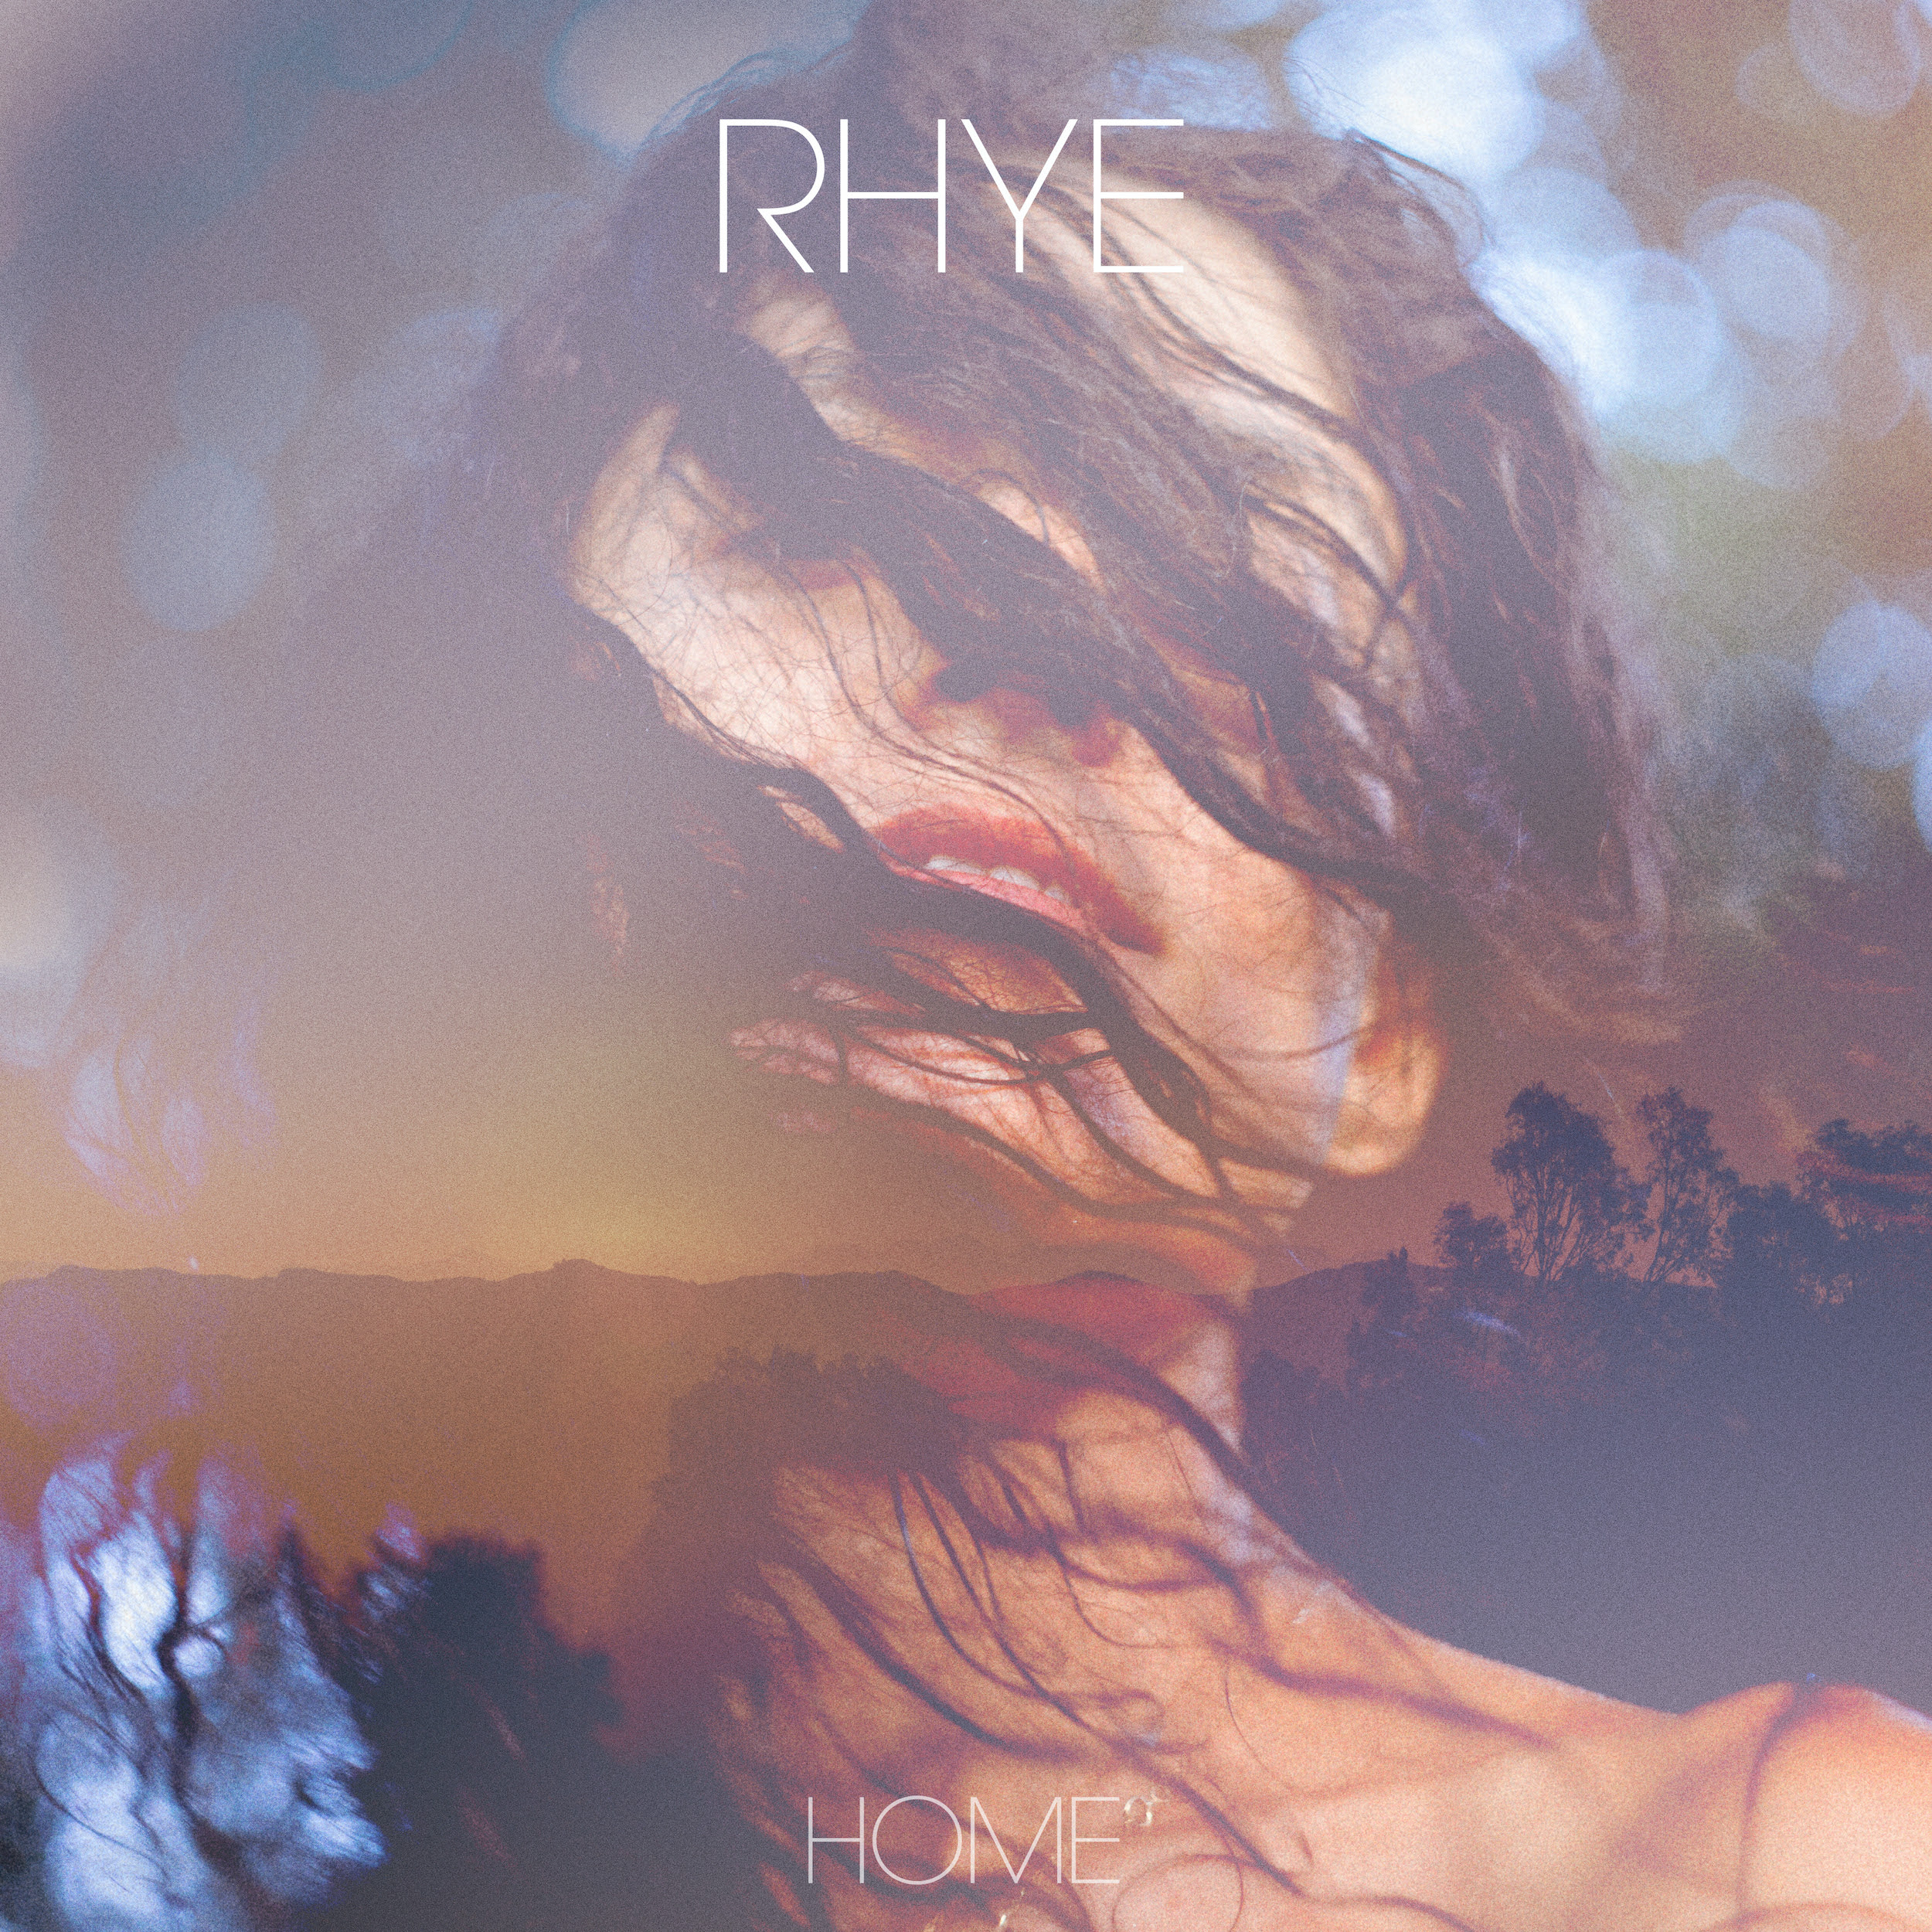 Rhye Home artwork